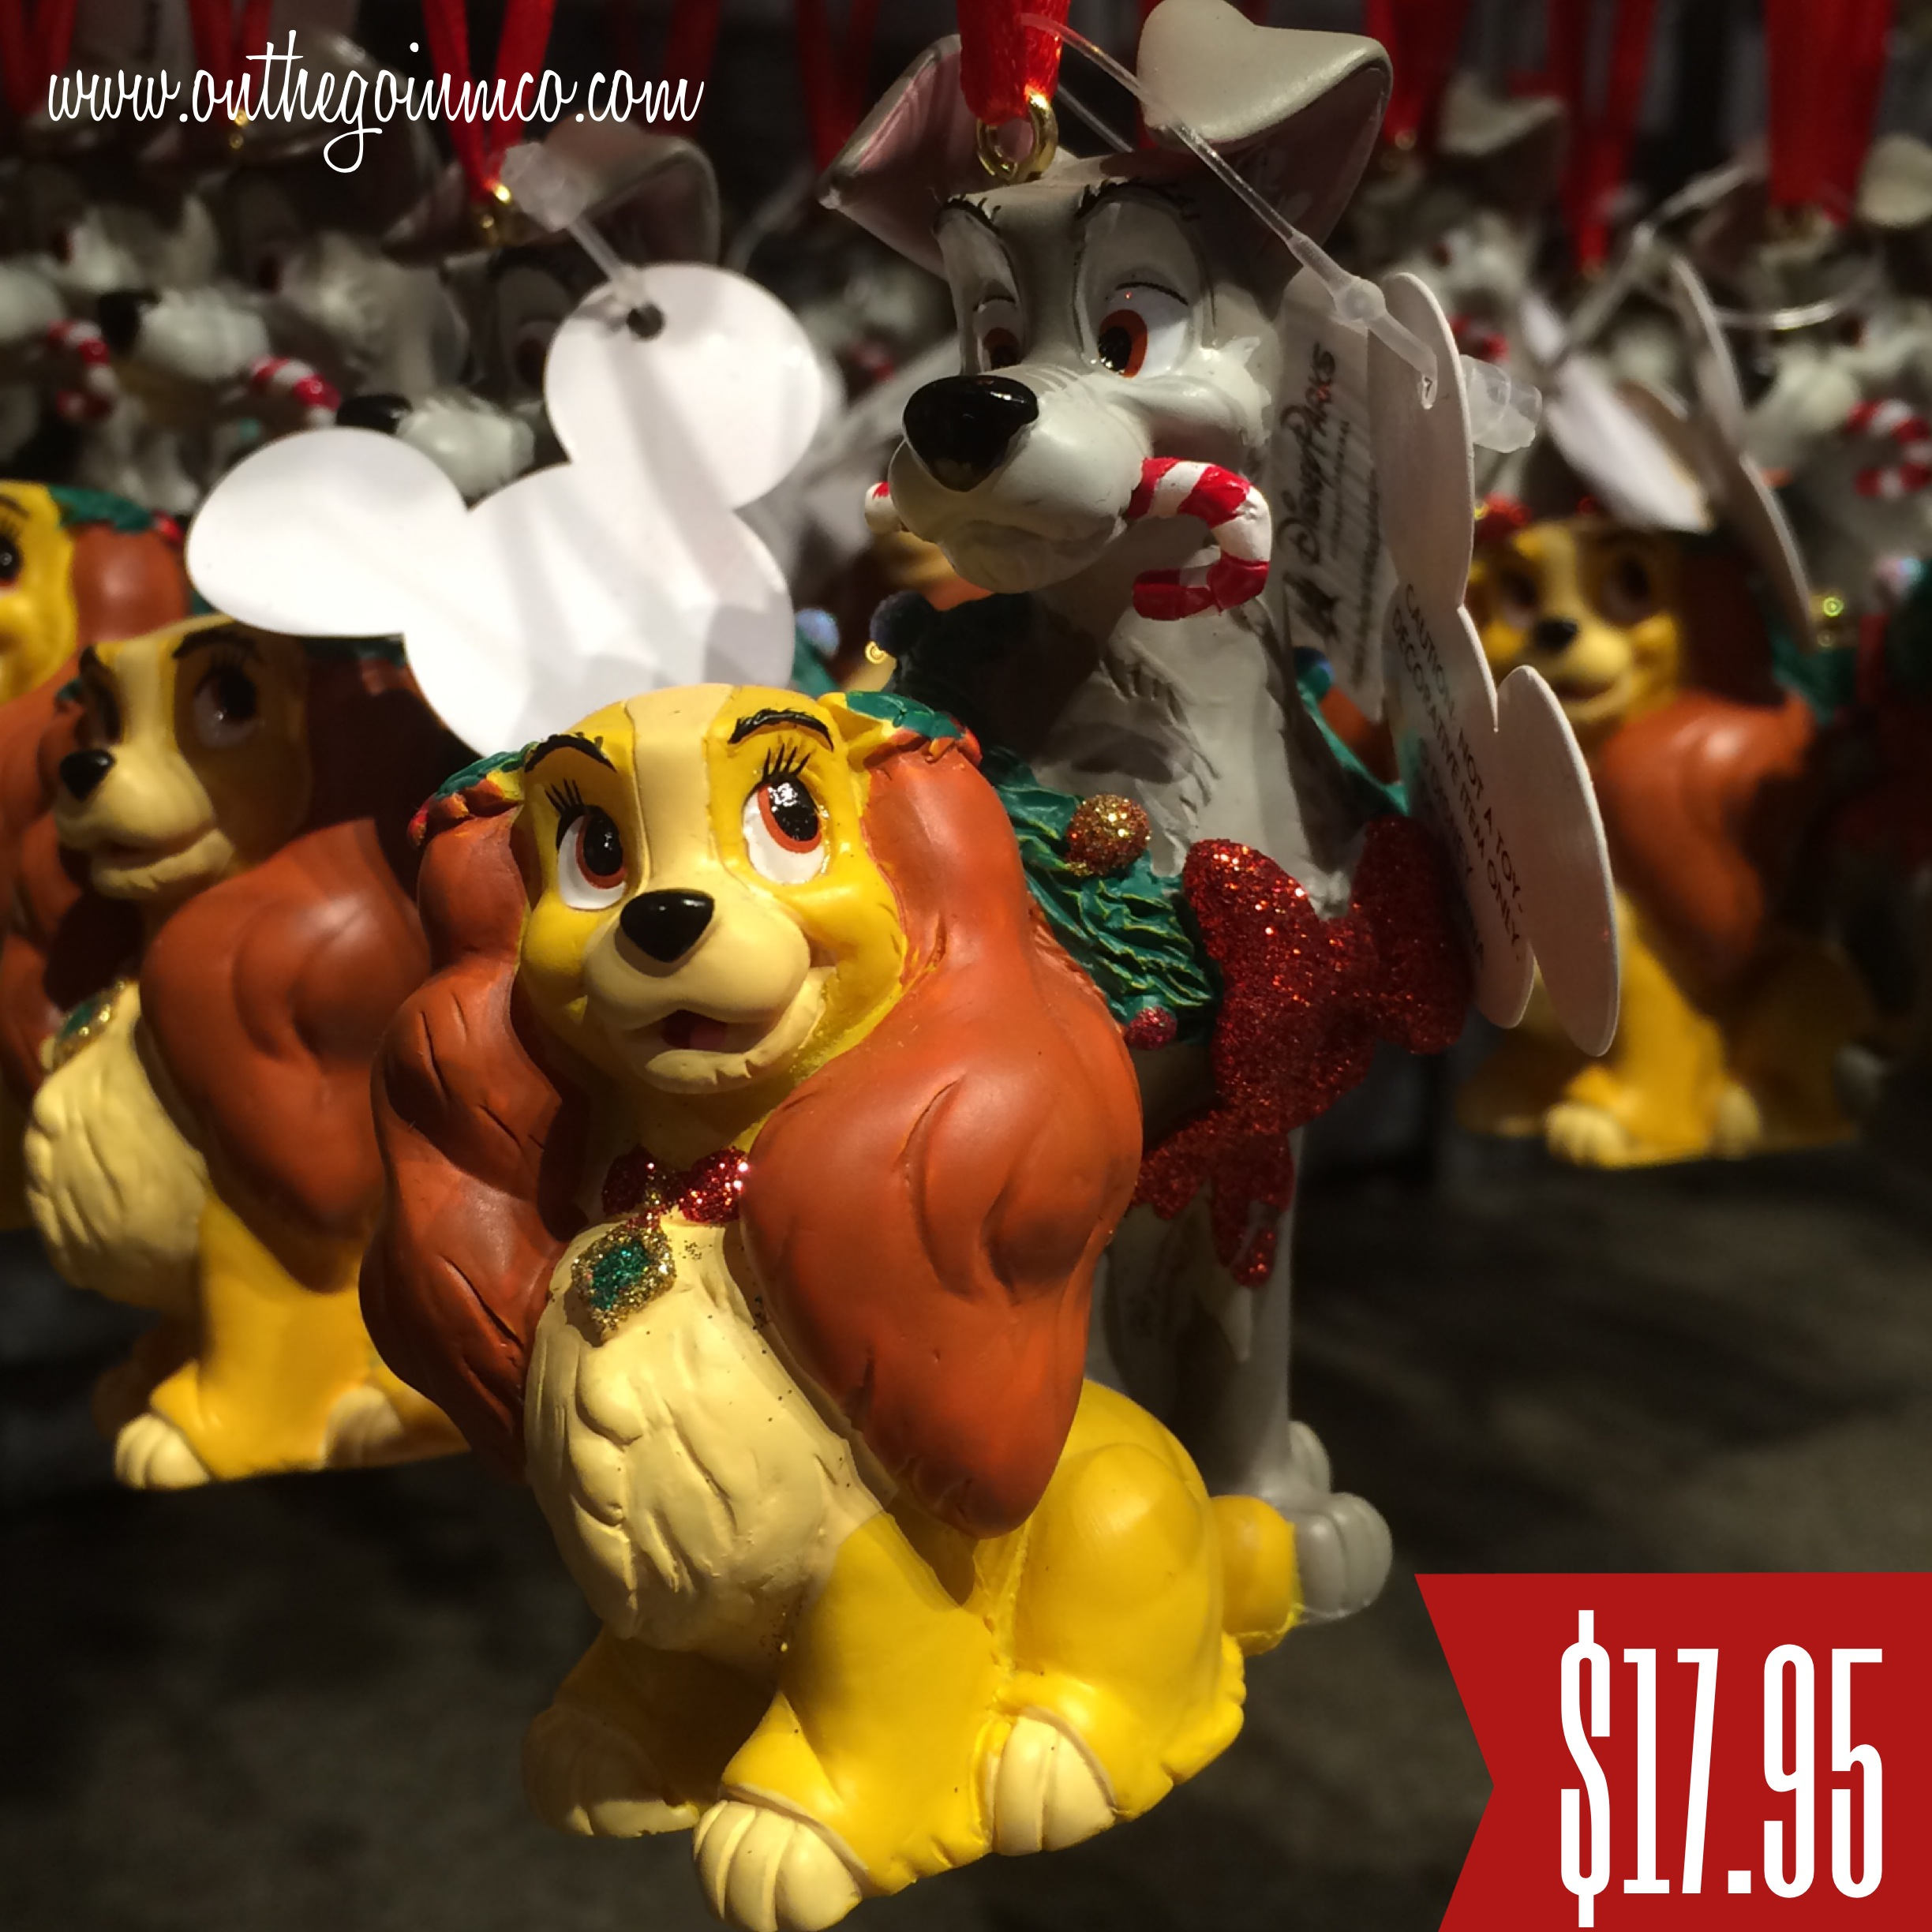 walt disney world christmas ornaments lady and the tramp - Disney Christmas Characters